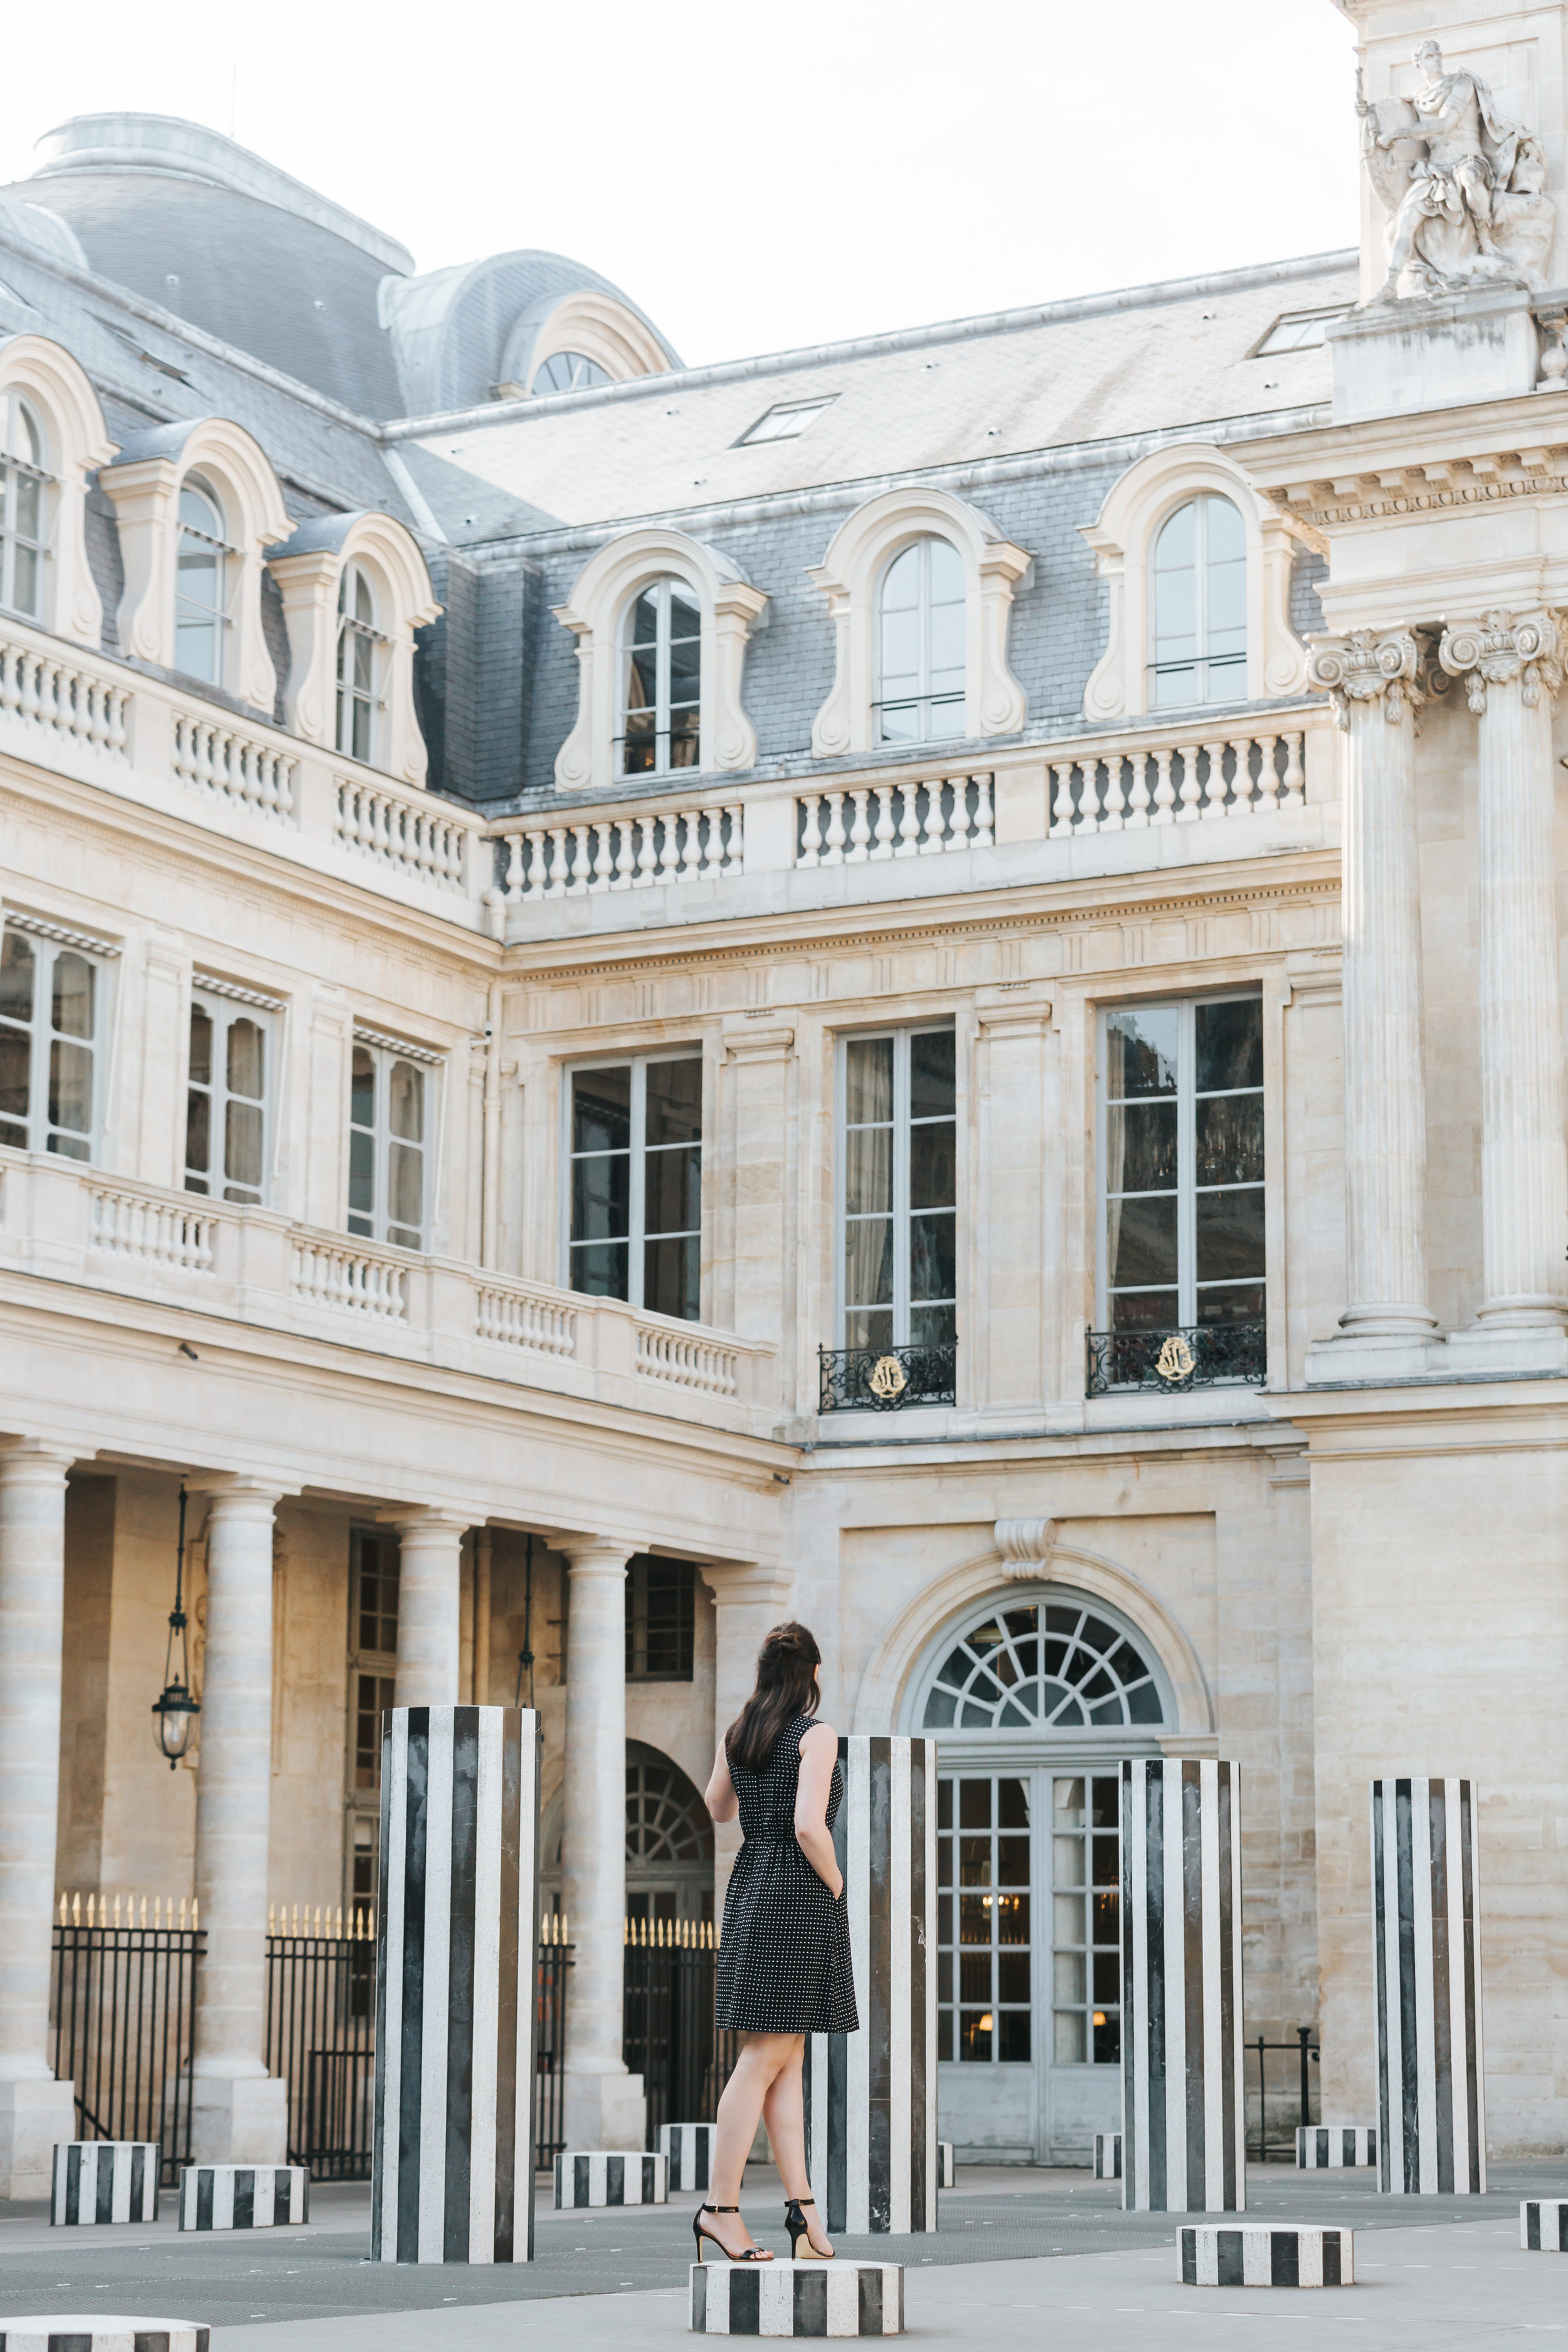 rebecca plotnick palais royal paris, france photos by iheartparisfr